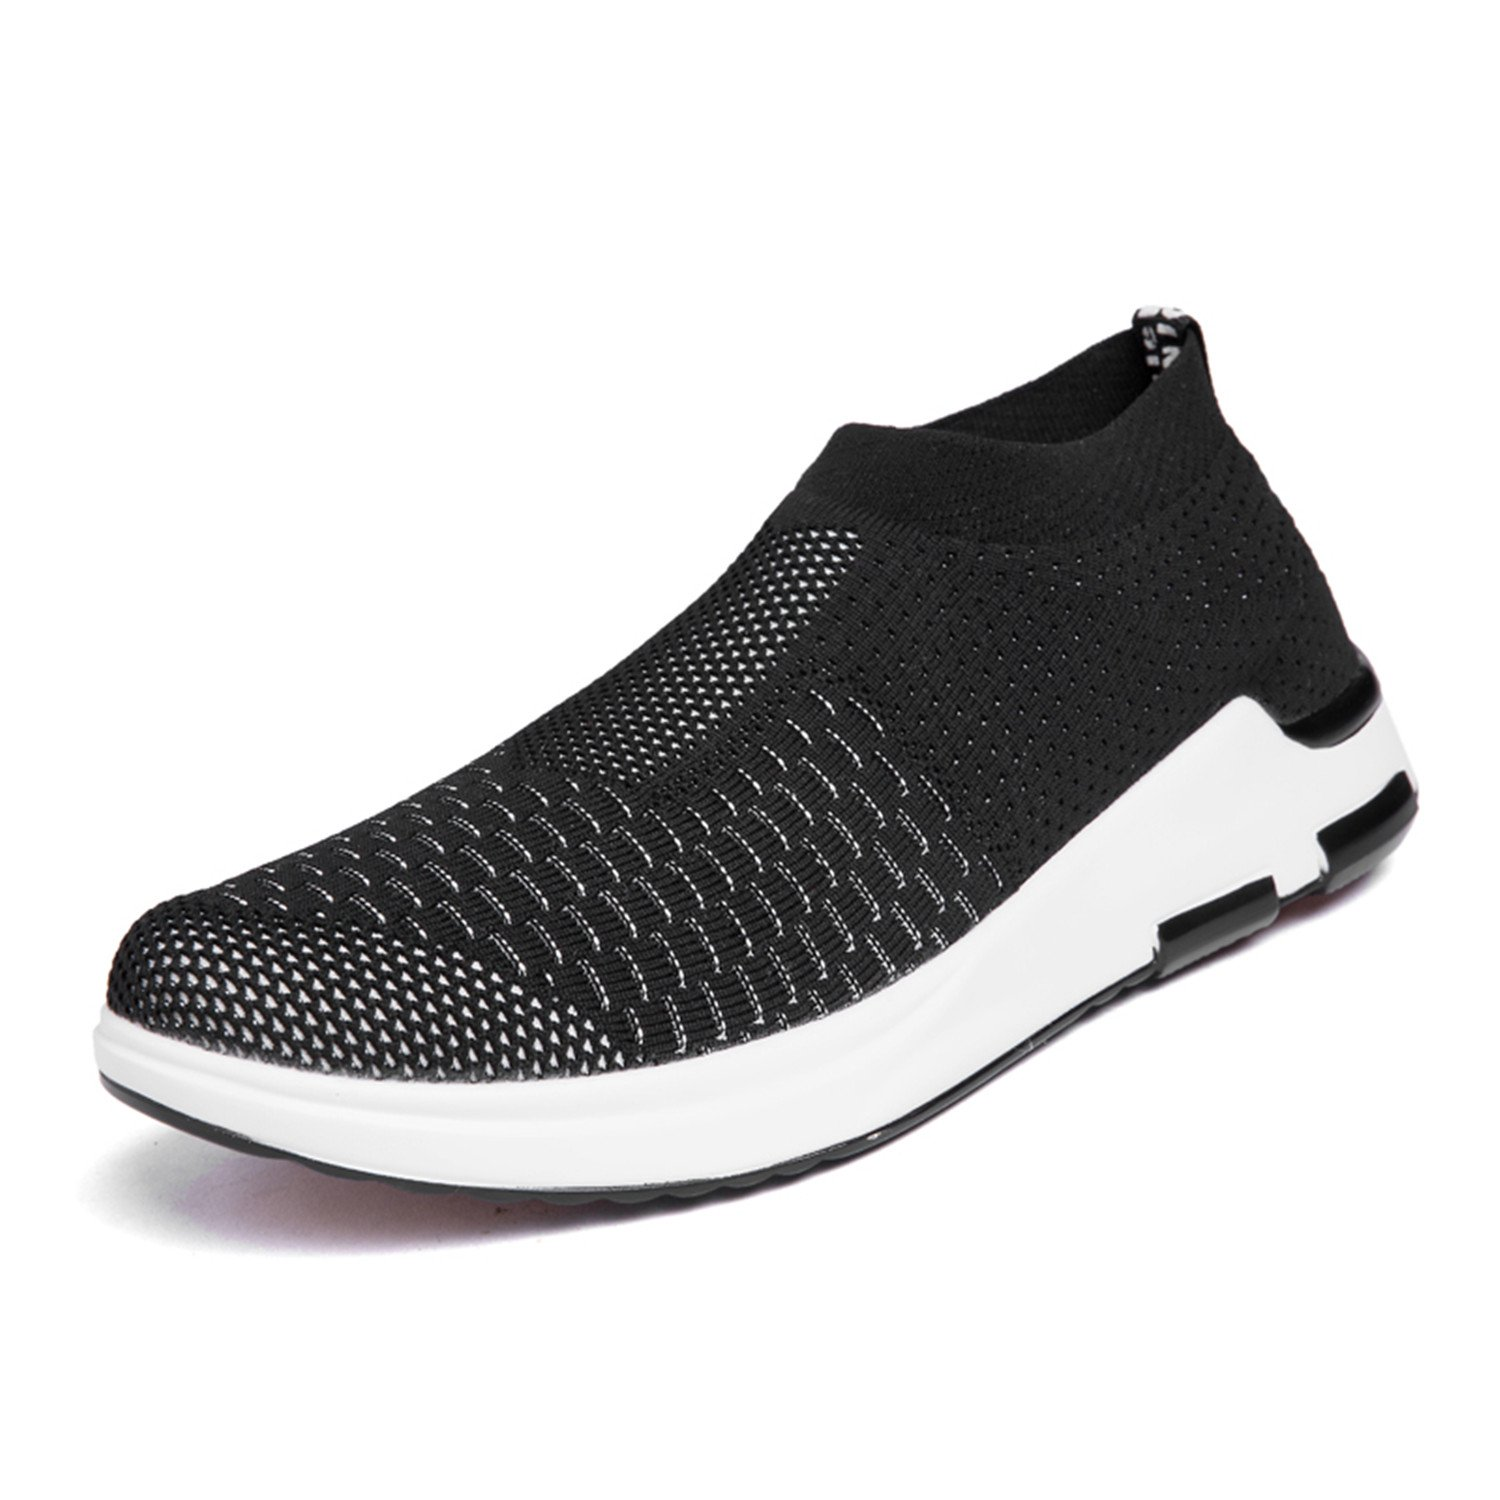 YALOX Men's Women's Walking Shoes Slip On Lightweight Sneakers Fashion Casual Breathable Athletic Running Shoes Men 7.5 D(M) US|Black-3-m